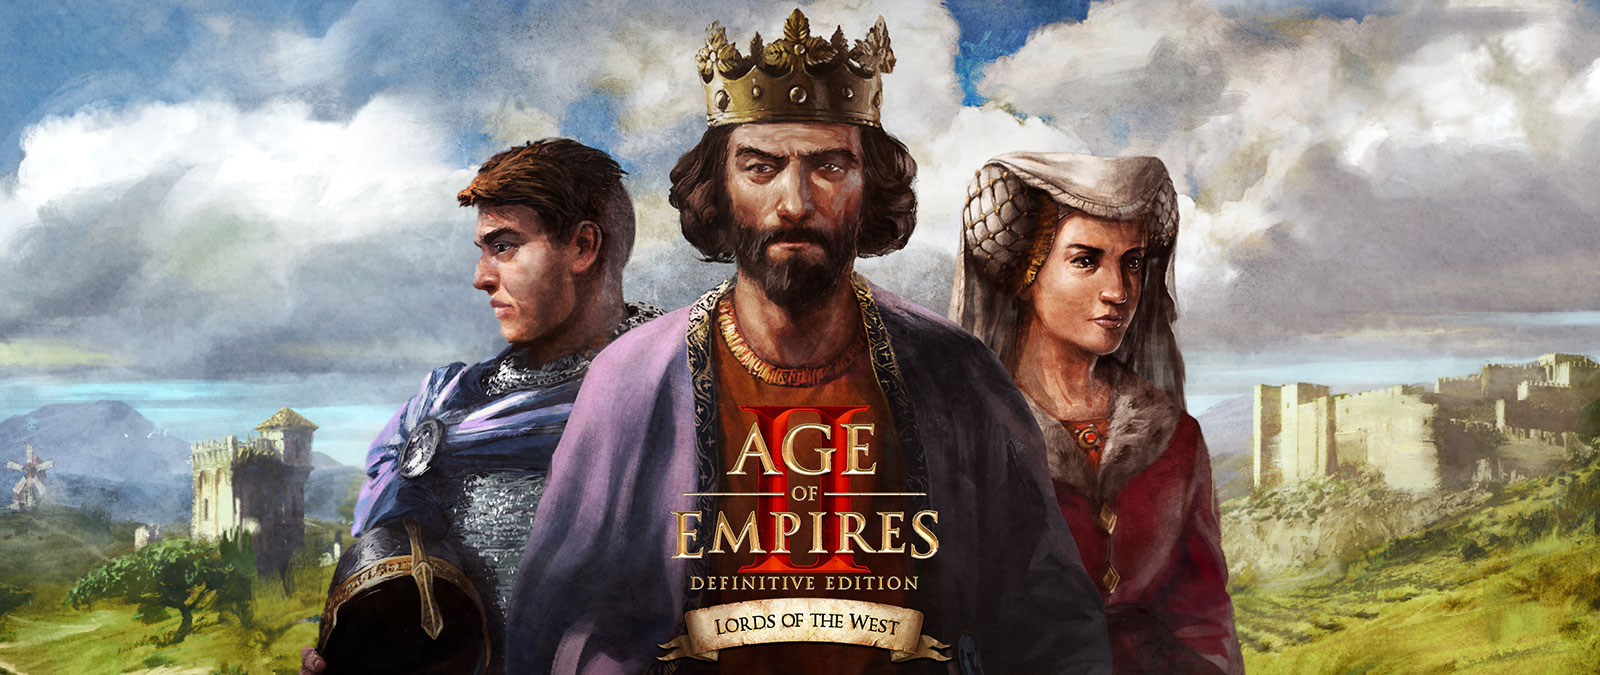 Age of Empires II: Definitive Edition Lords of the West. Drei Figuren posieren.